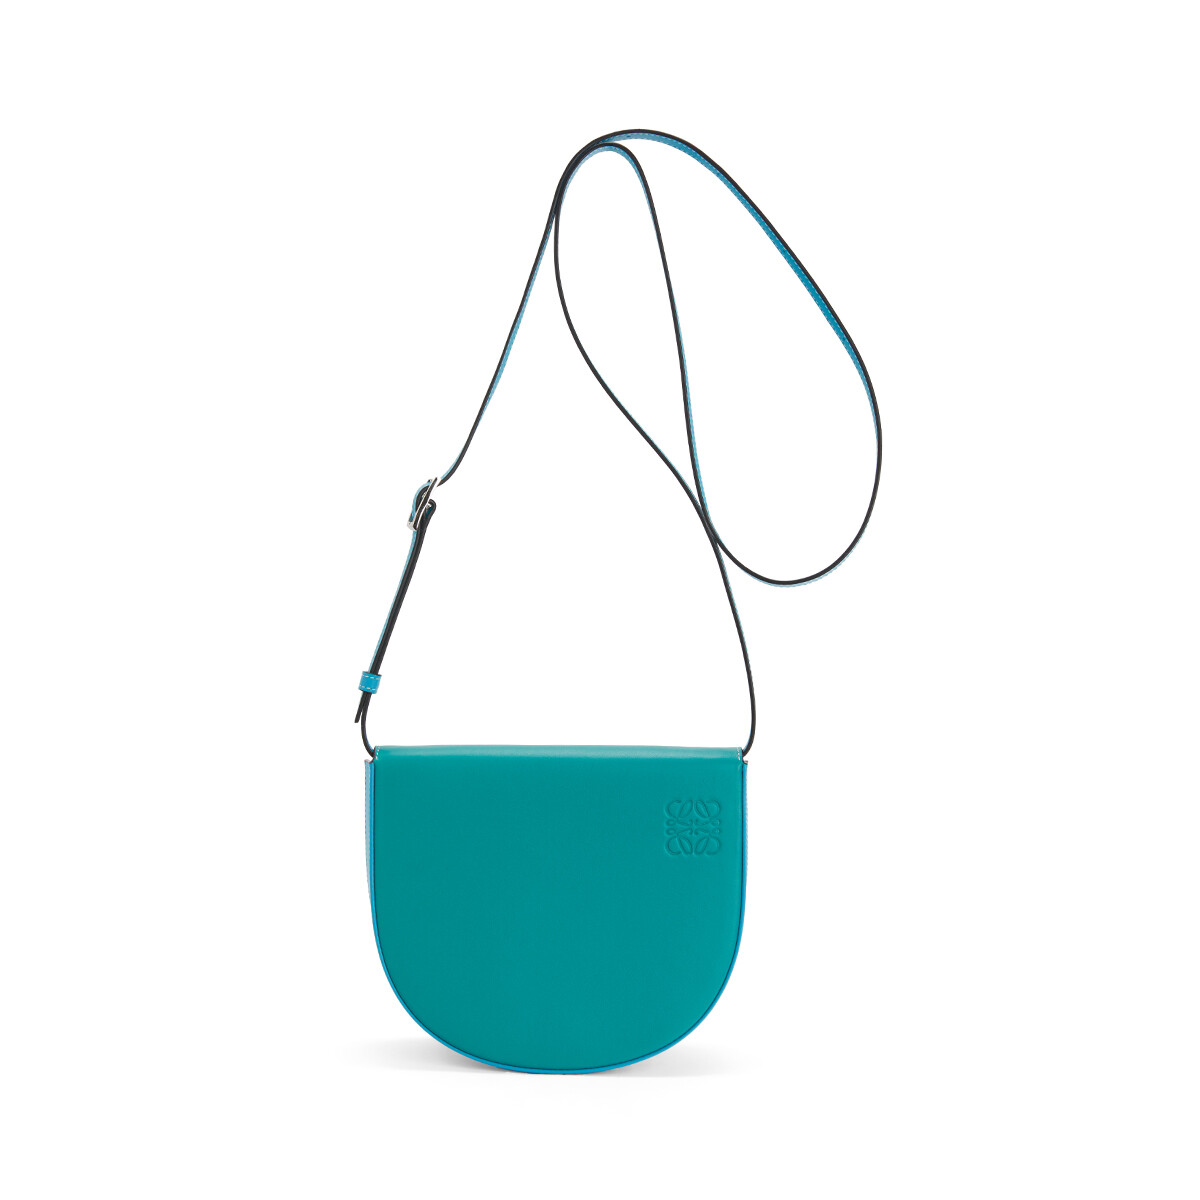 LOEWE Heel Bag Emerald Green/Peacock Blue front